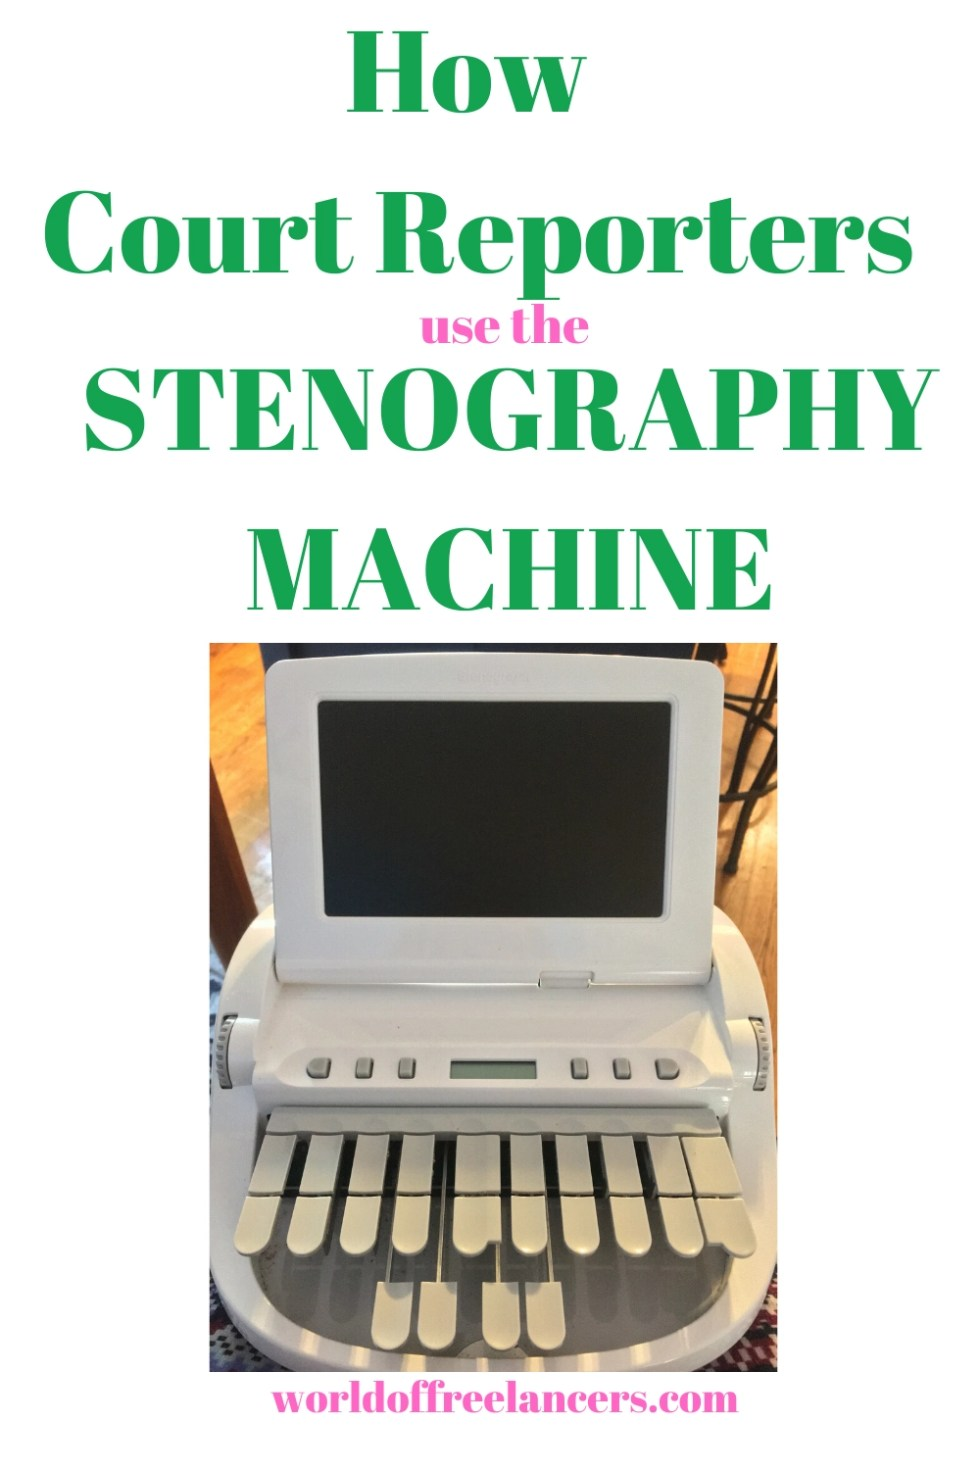 How Court Reporters use the Stenography Machine